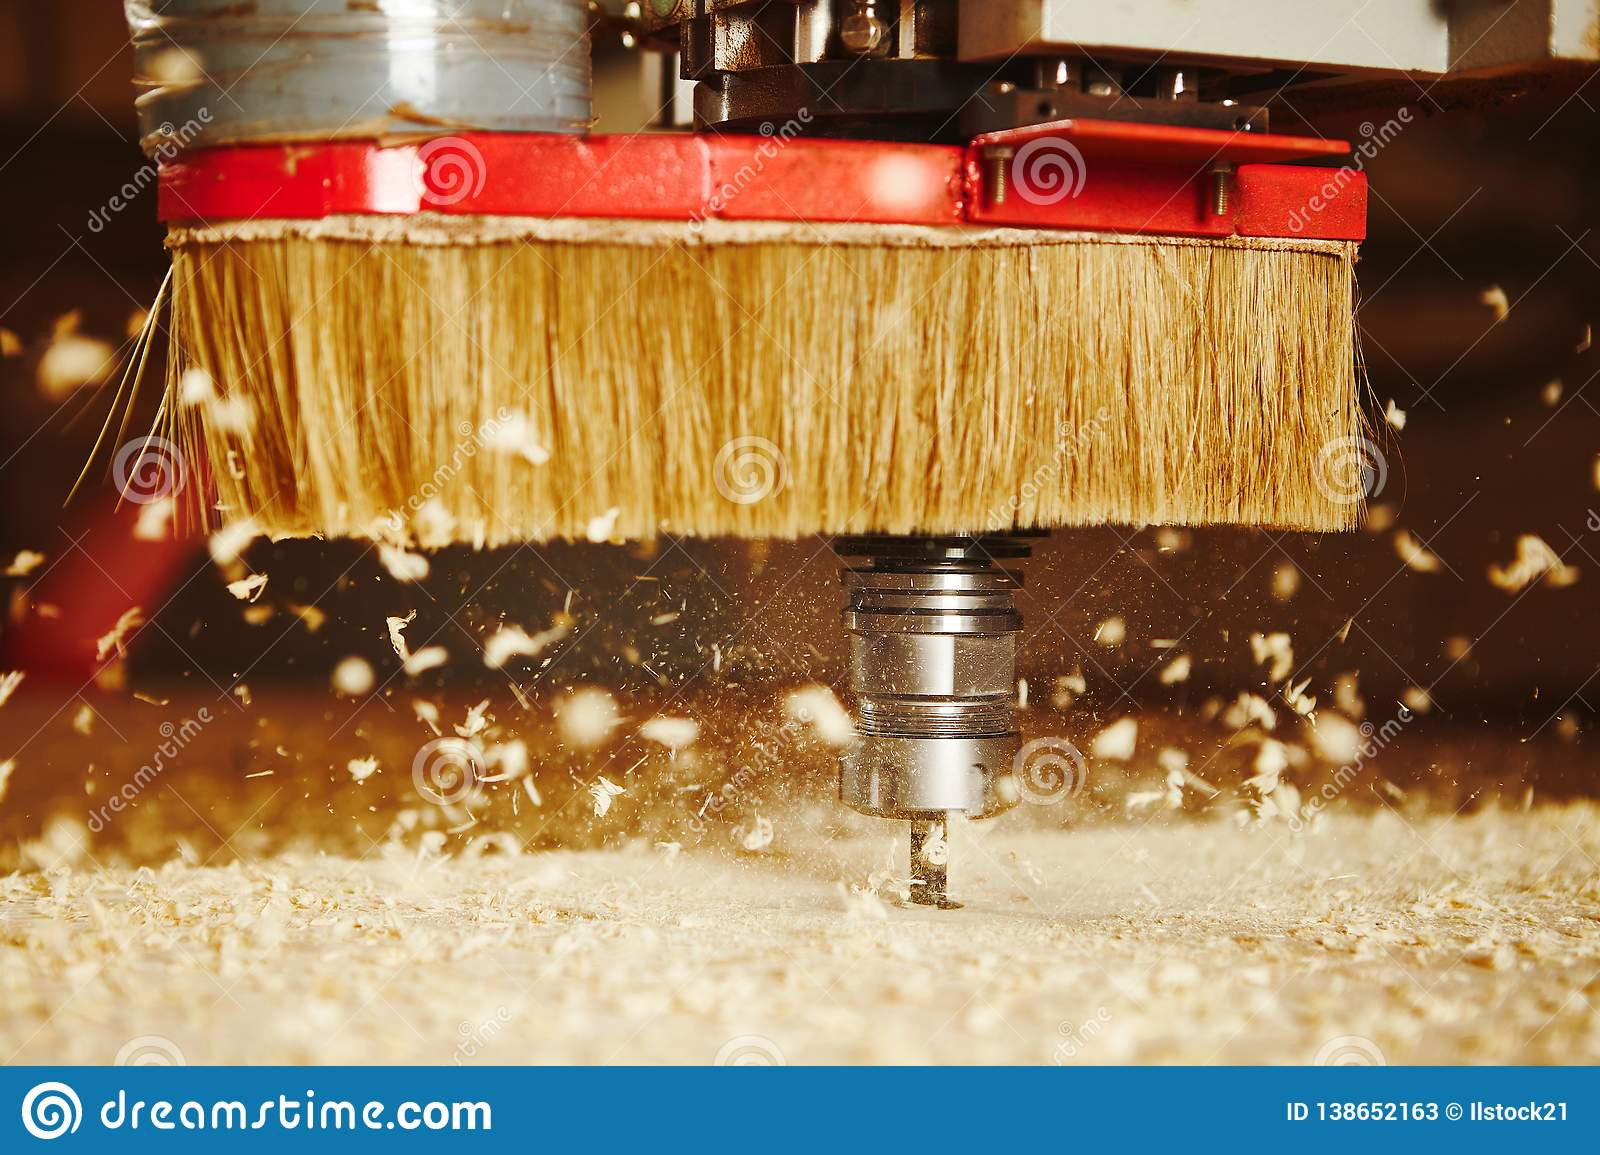 Cnc Machine Working Cutting Wood Woodwork Industry Stock Image